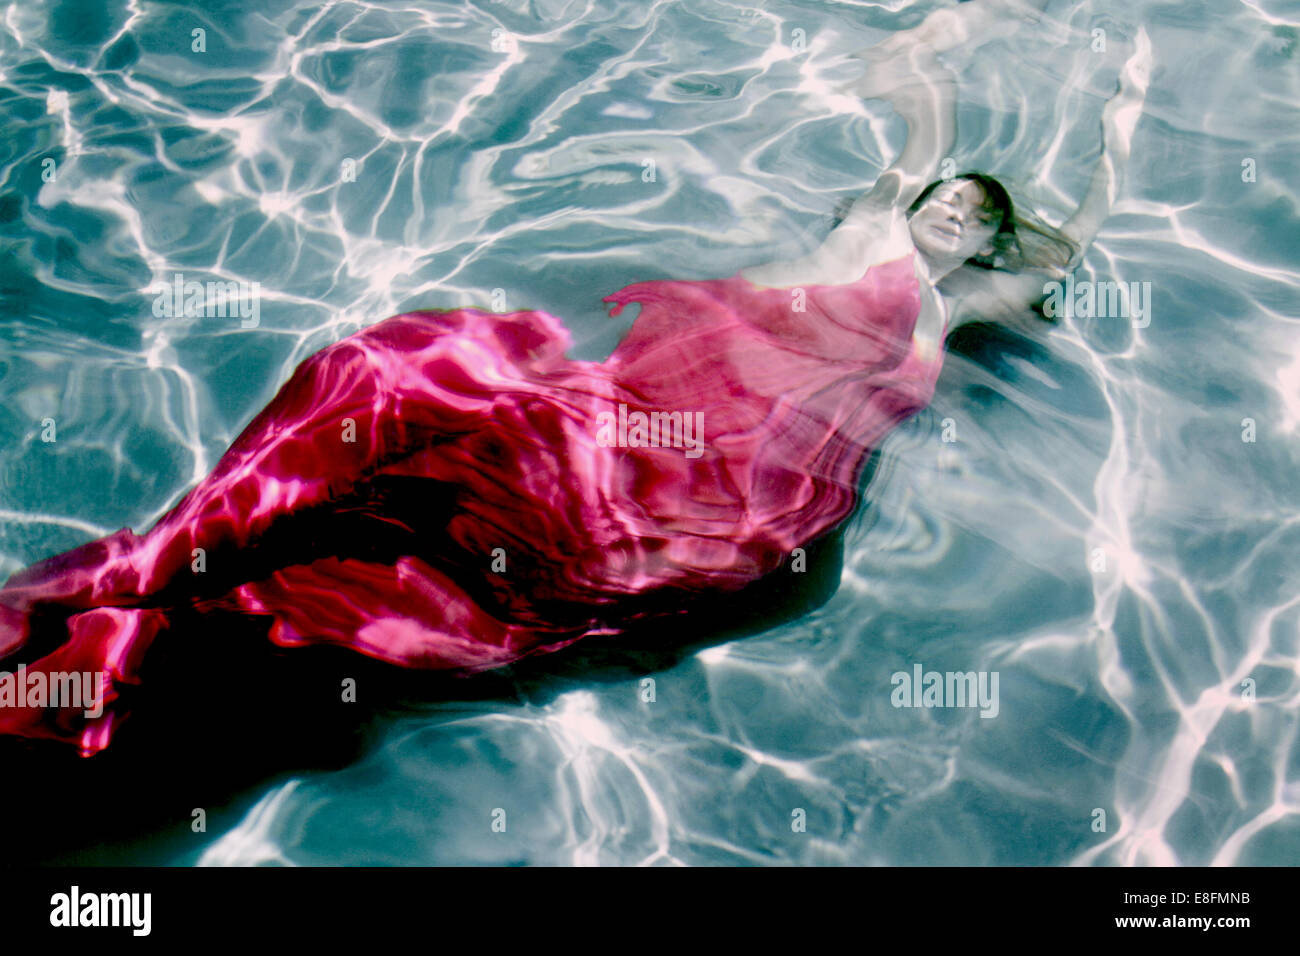 Woman in dress underwater - Stock Image